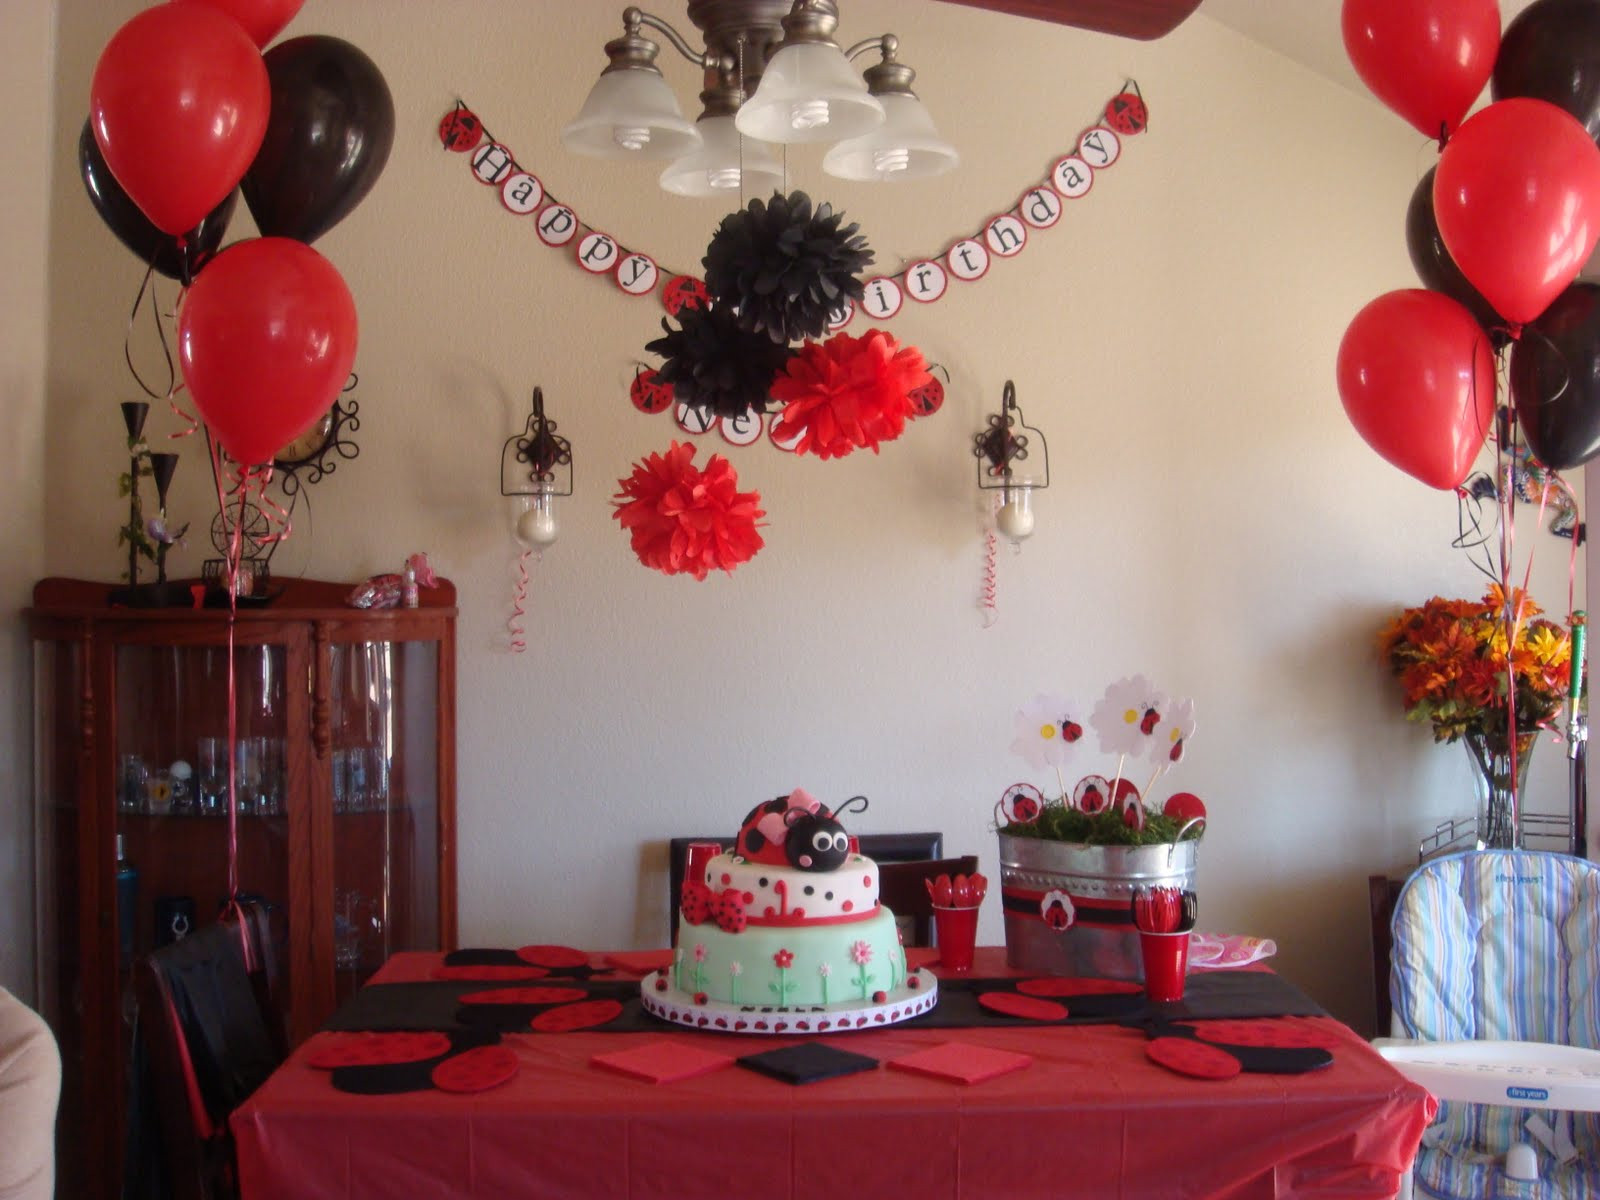 Best ideas about Ladybug Birthday Decorations . Save or Pin Expressions By Devin Ladybug 1st Birthday Bash Now.